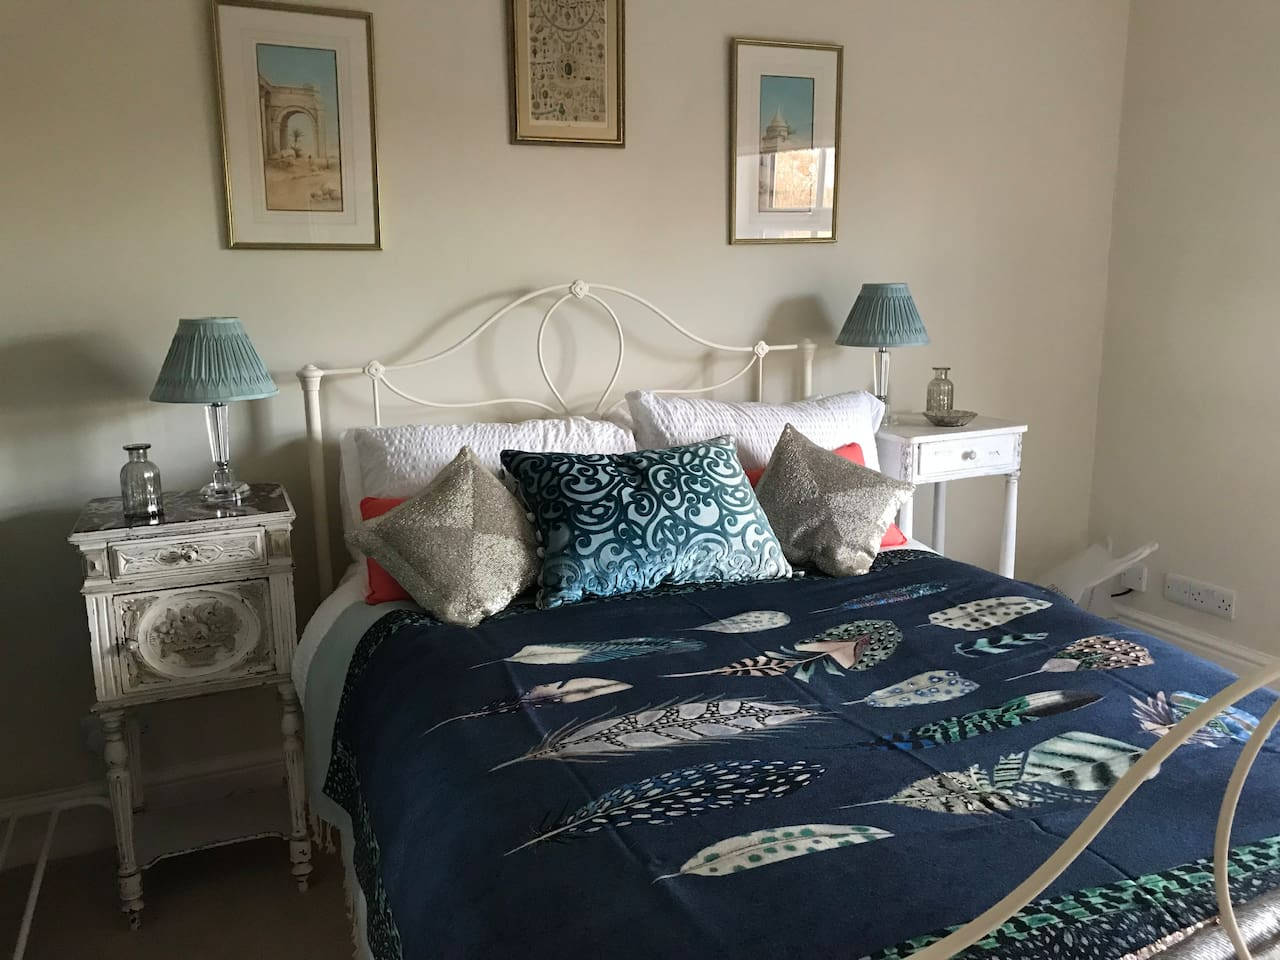 Beautiful river facing room with comfy double bed - all newly decorated